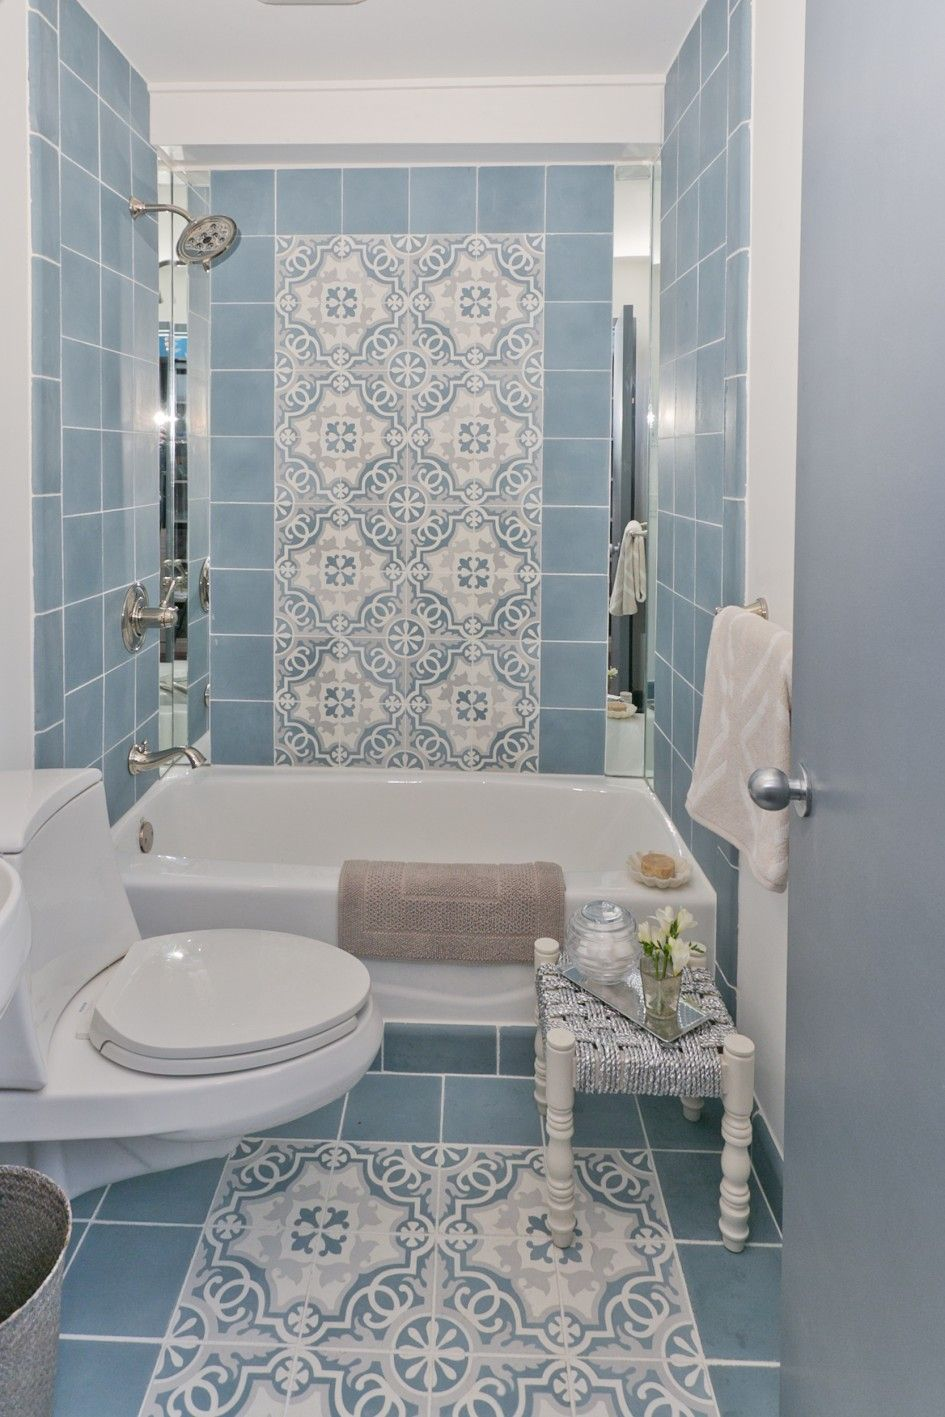 Beautiful Minimalist Blue Tile Pattern Bathroom Decor Also Tiles Pinterest Blue Tiles